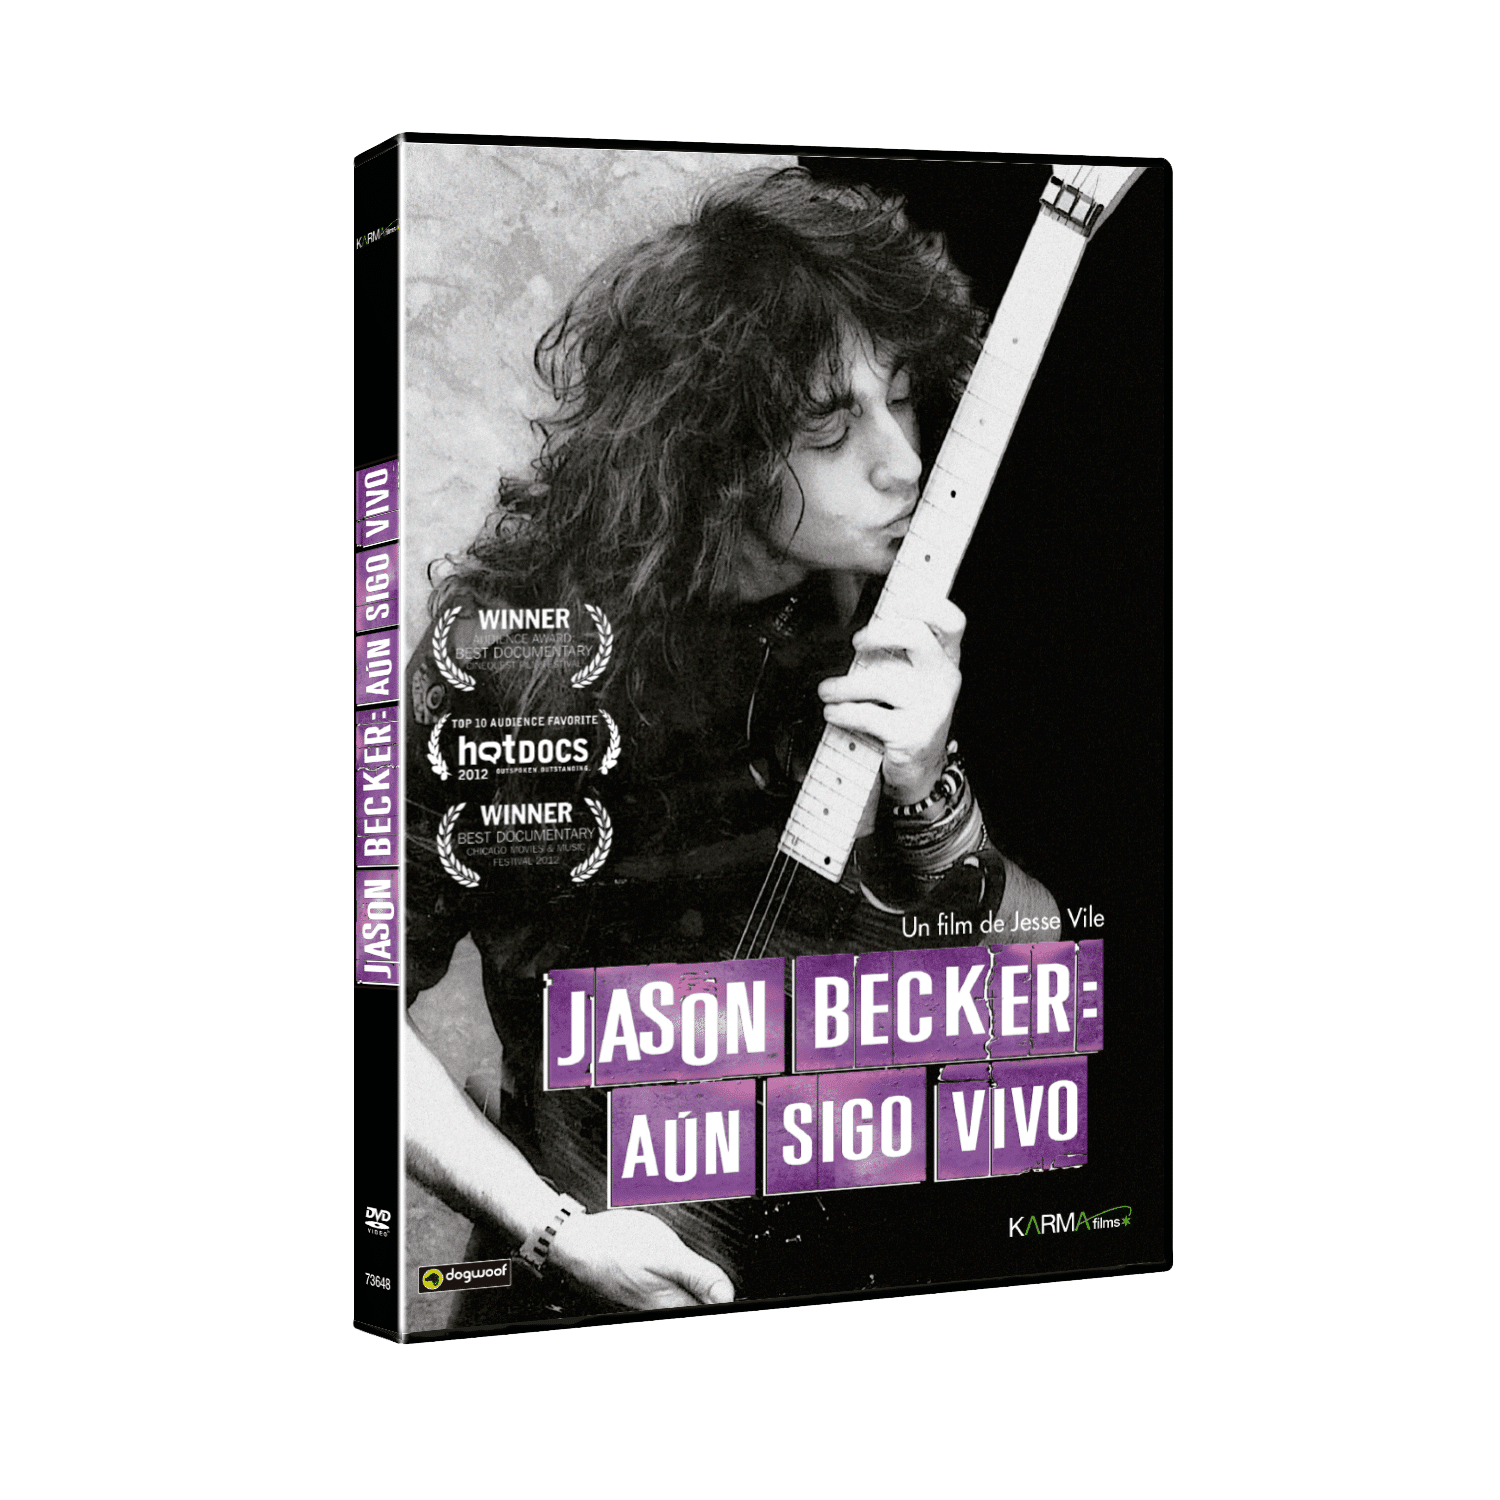 JASON_BECKER_DVD